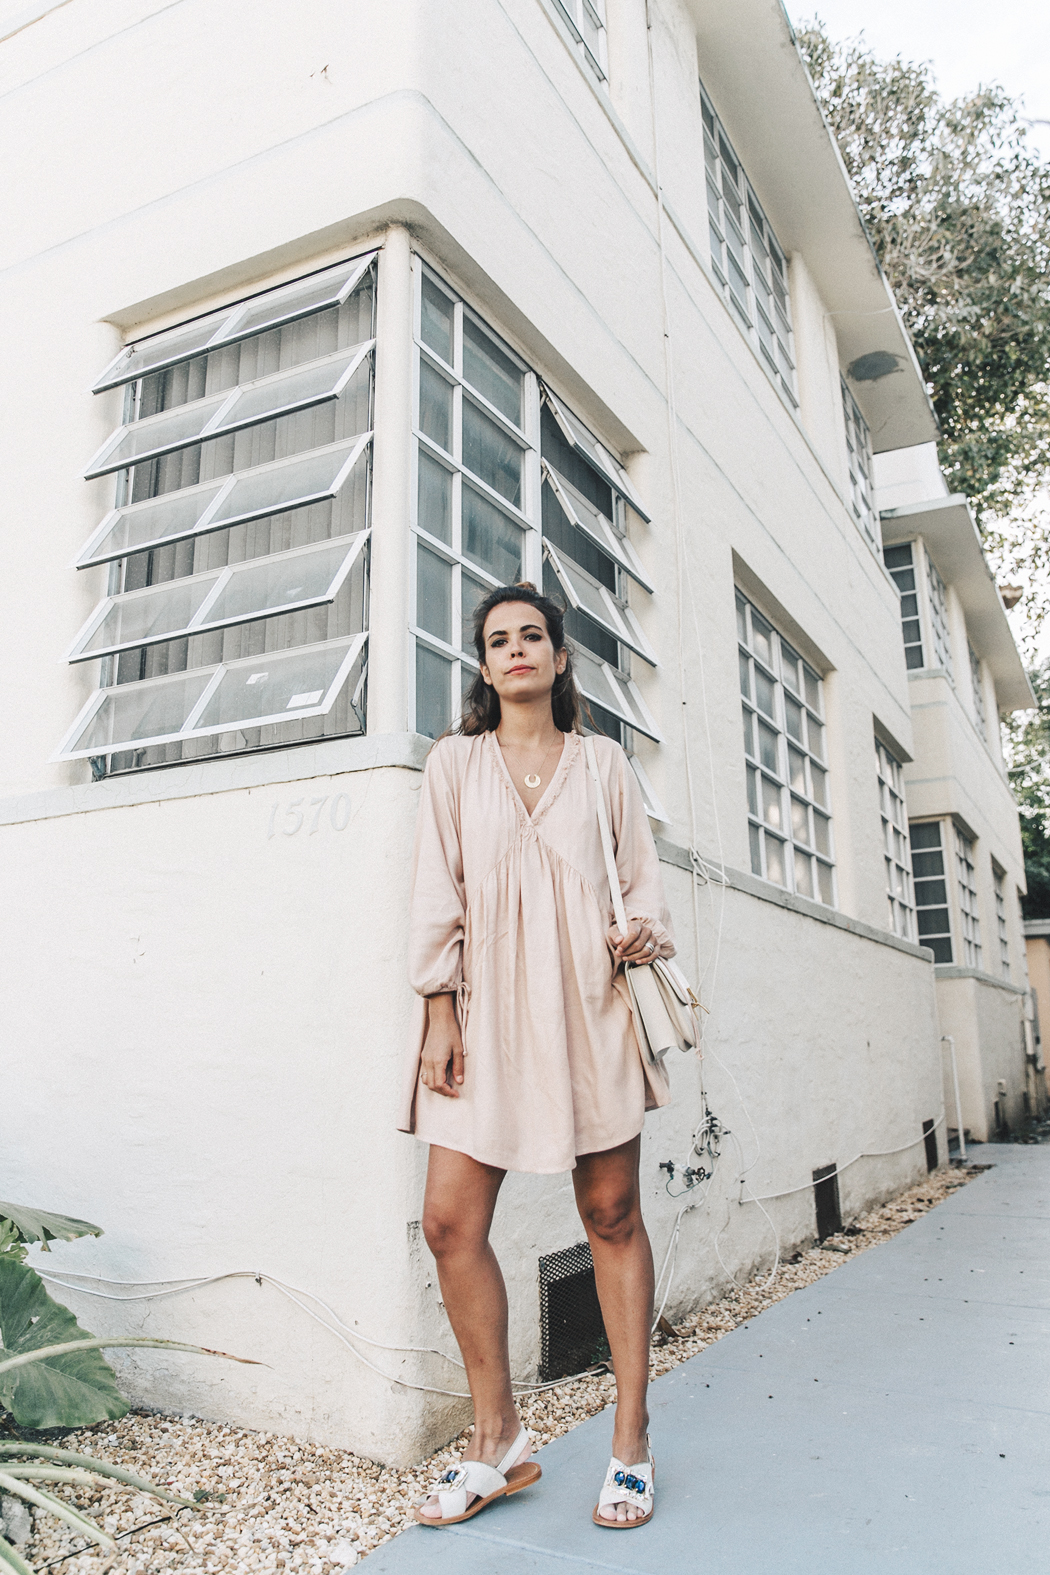 Miami-Pink_Dress-Marni_Sandals-Outfit-Collage_On_The_Road-Street_Style-35